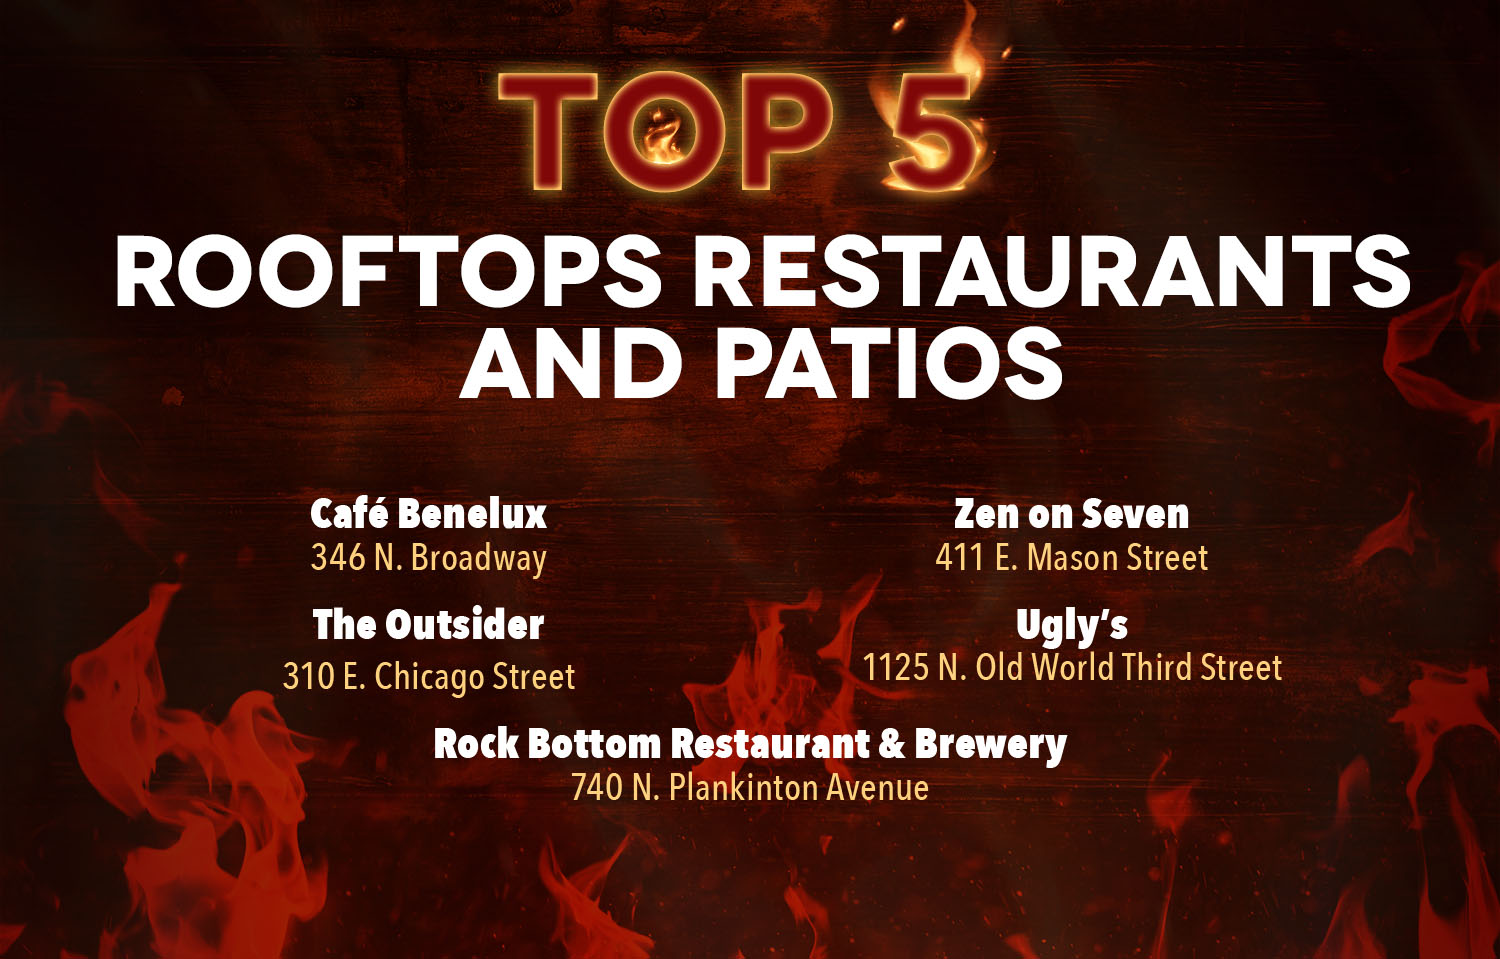 Milwaukee Downtown Top 5 Best Rooftop Restaurants & Patios